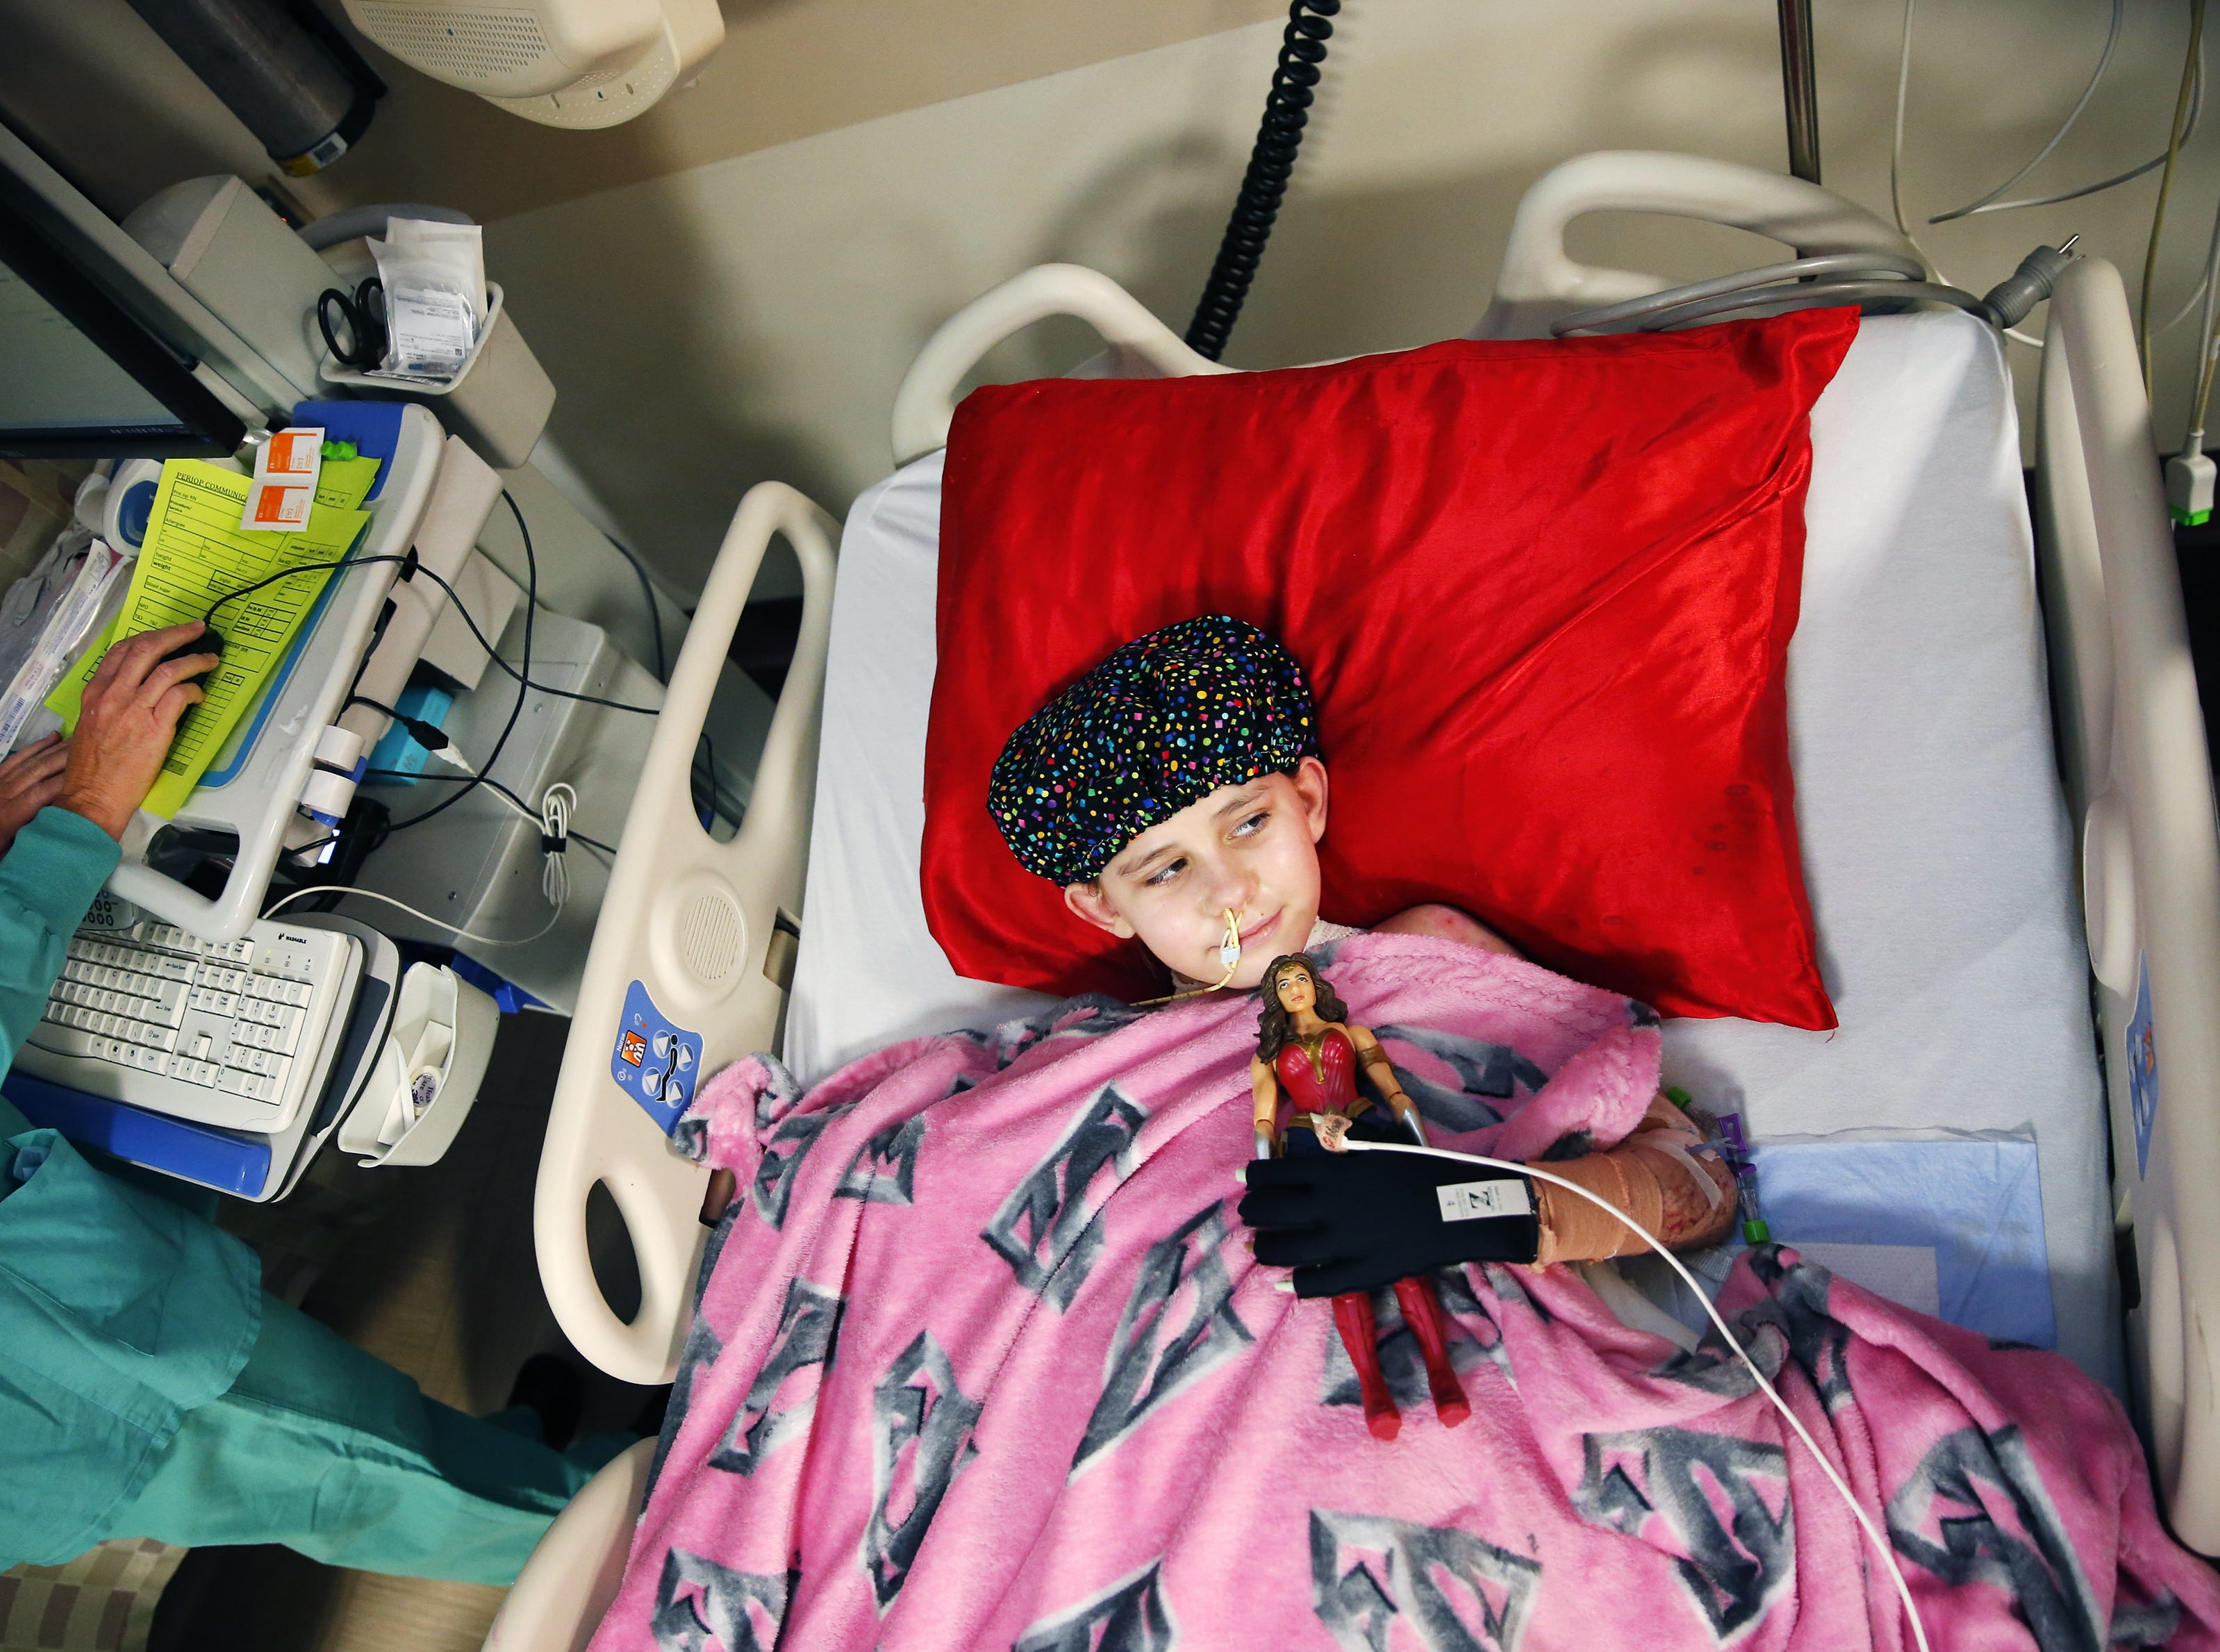 Isabella McCune holds a Wonder Woman doll before surgery at the Arizona Burn Center in Phoenix on May 24, 2018. She was severely burned in a home accident in March.